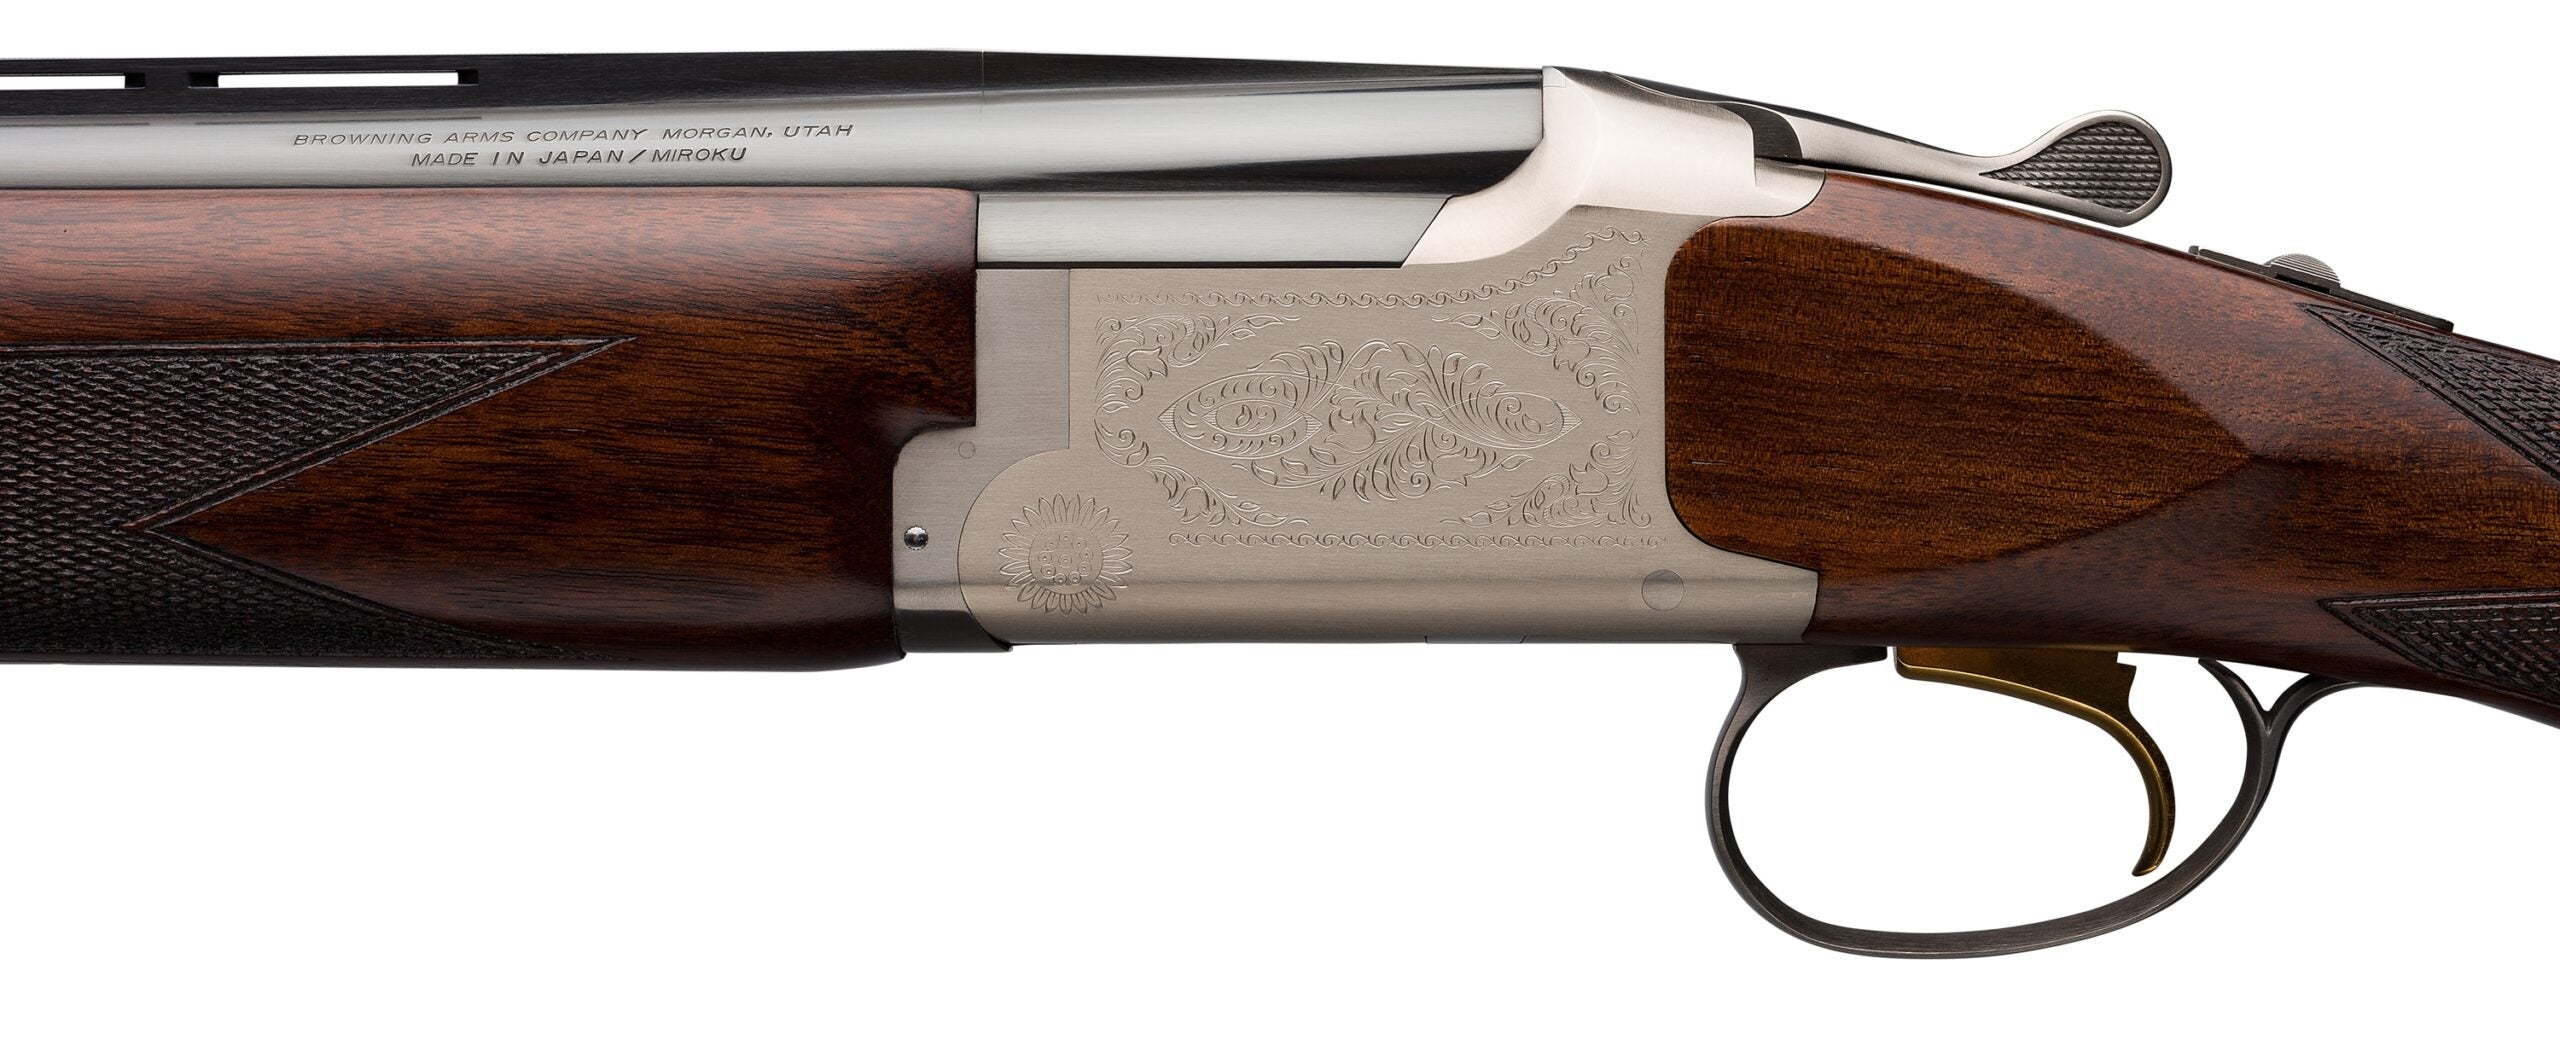 Citori Feather Superlight 16 Gauge shotgun.